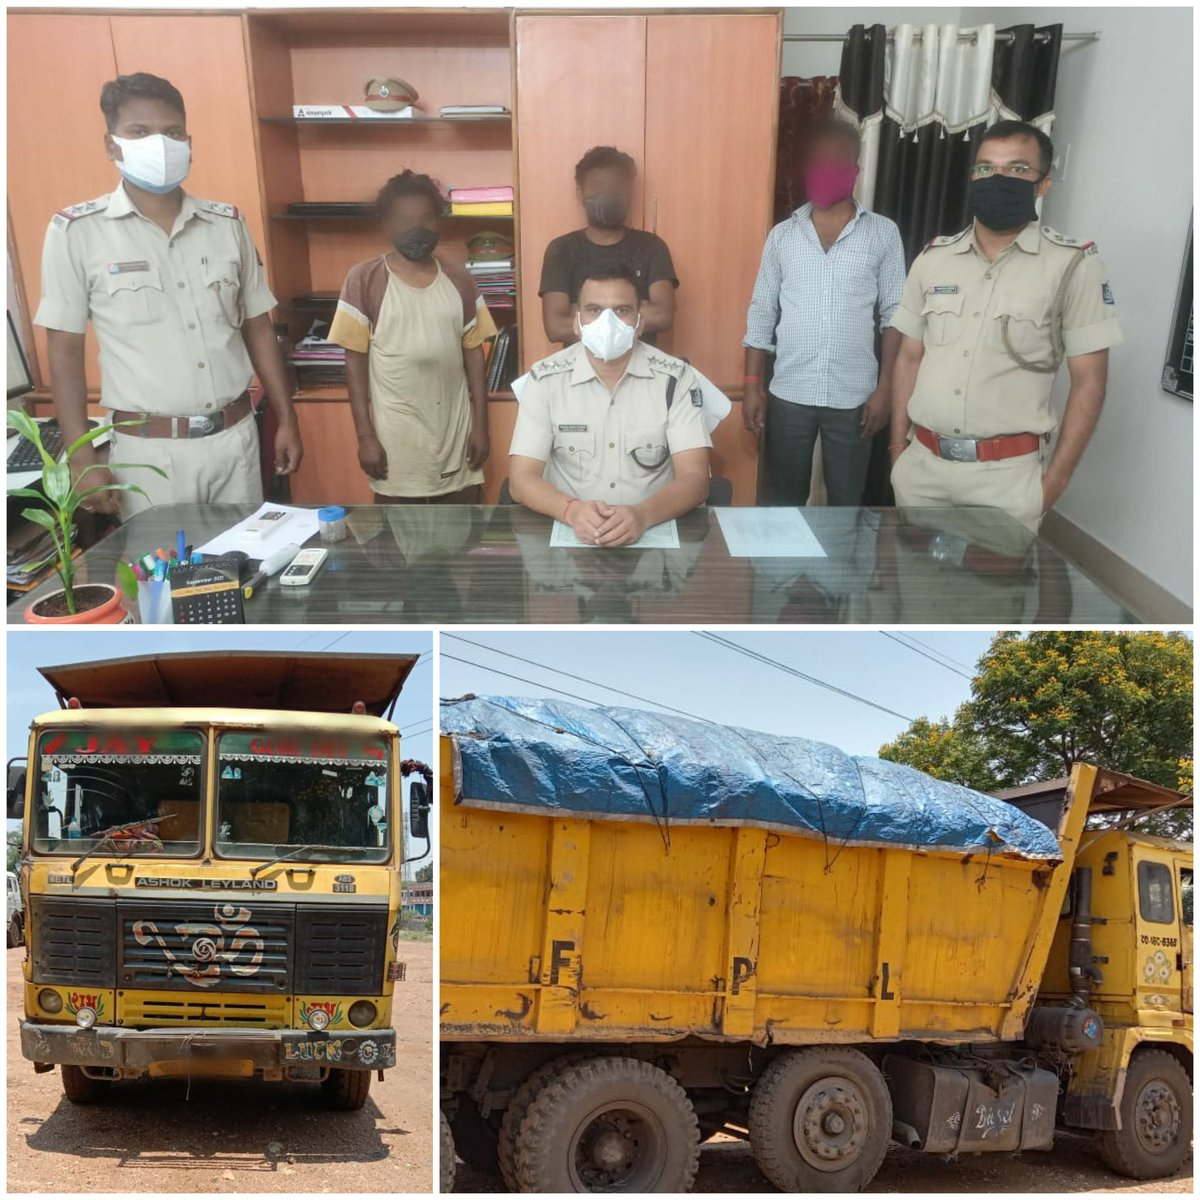 Rajgangpur Police seized one Hyva vehicle at Mandiakudar during illegal transportation of Coal from Hemgir side. 3 persons have been apprehended and approx. 28 MT coal has been seized. PS case No. 152/21 was registered. @DGPOdisha @odisha_police @digwrrkl @SundargarhRto https://t.co/LygsuGHkcl